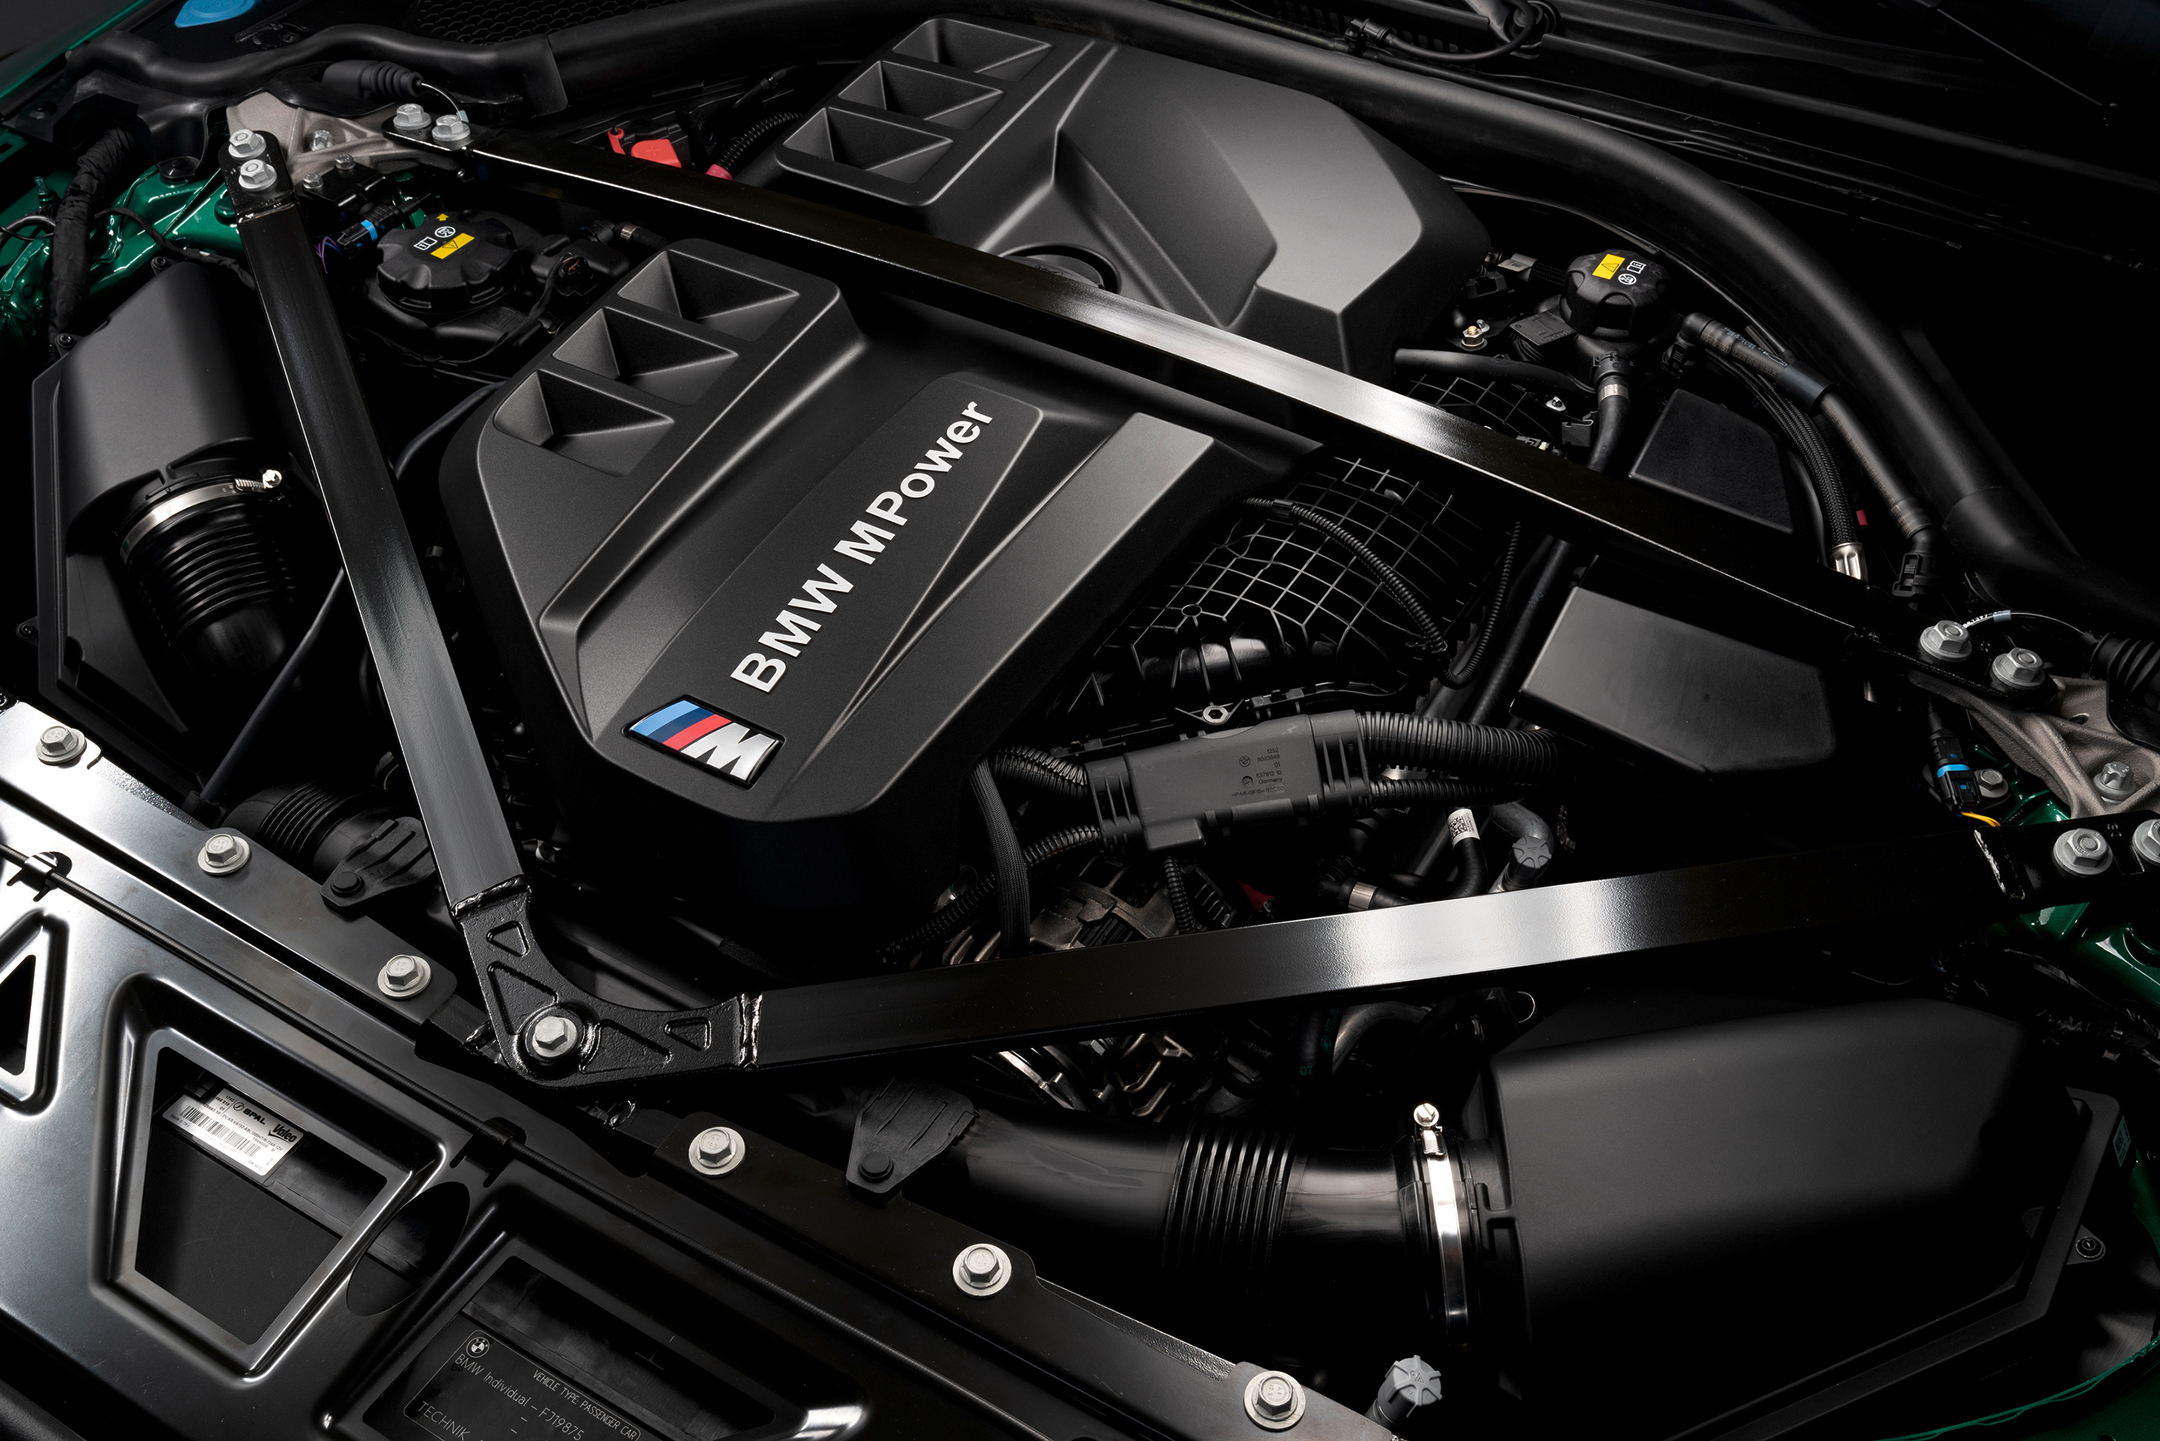 BMW M3 Competition - 2020 - engine / moteur - inline 6-cylinder / 6 cylindres en ligne - under the hood